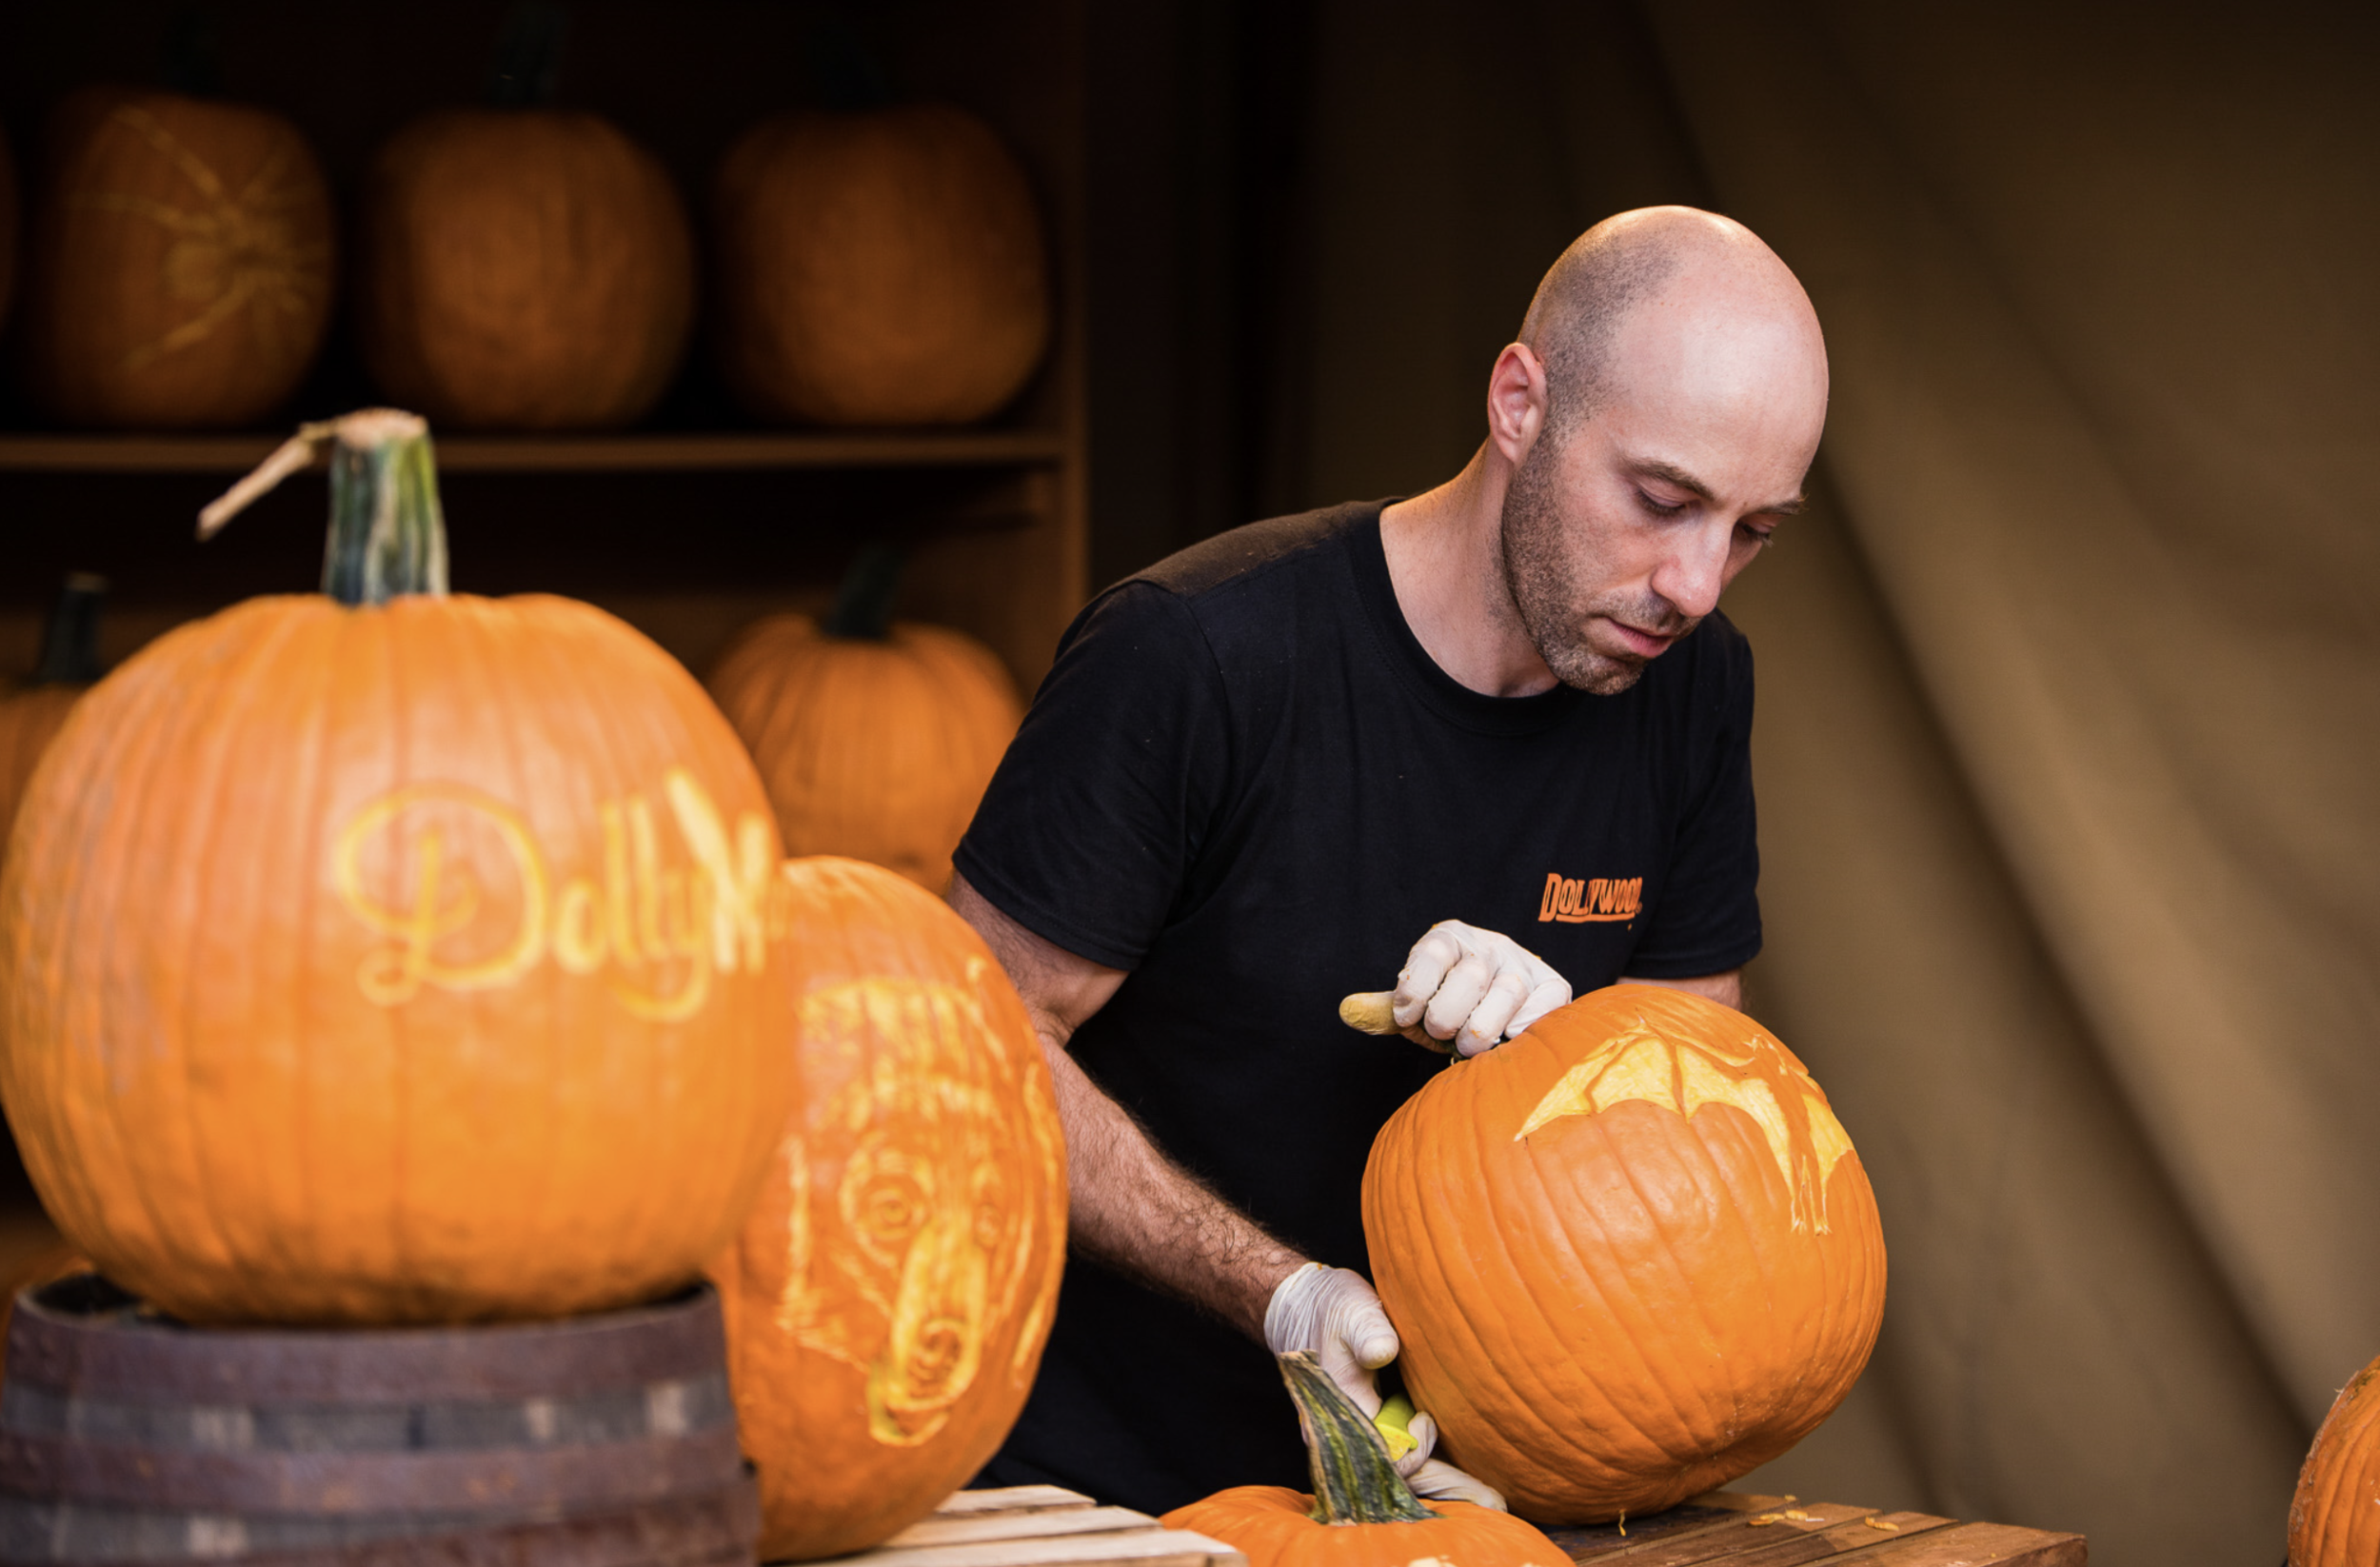 Marc carving at Dollywood